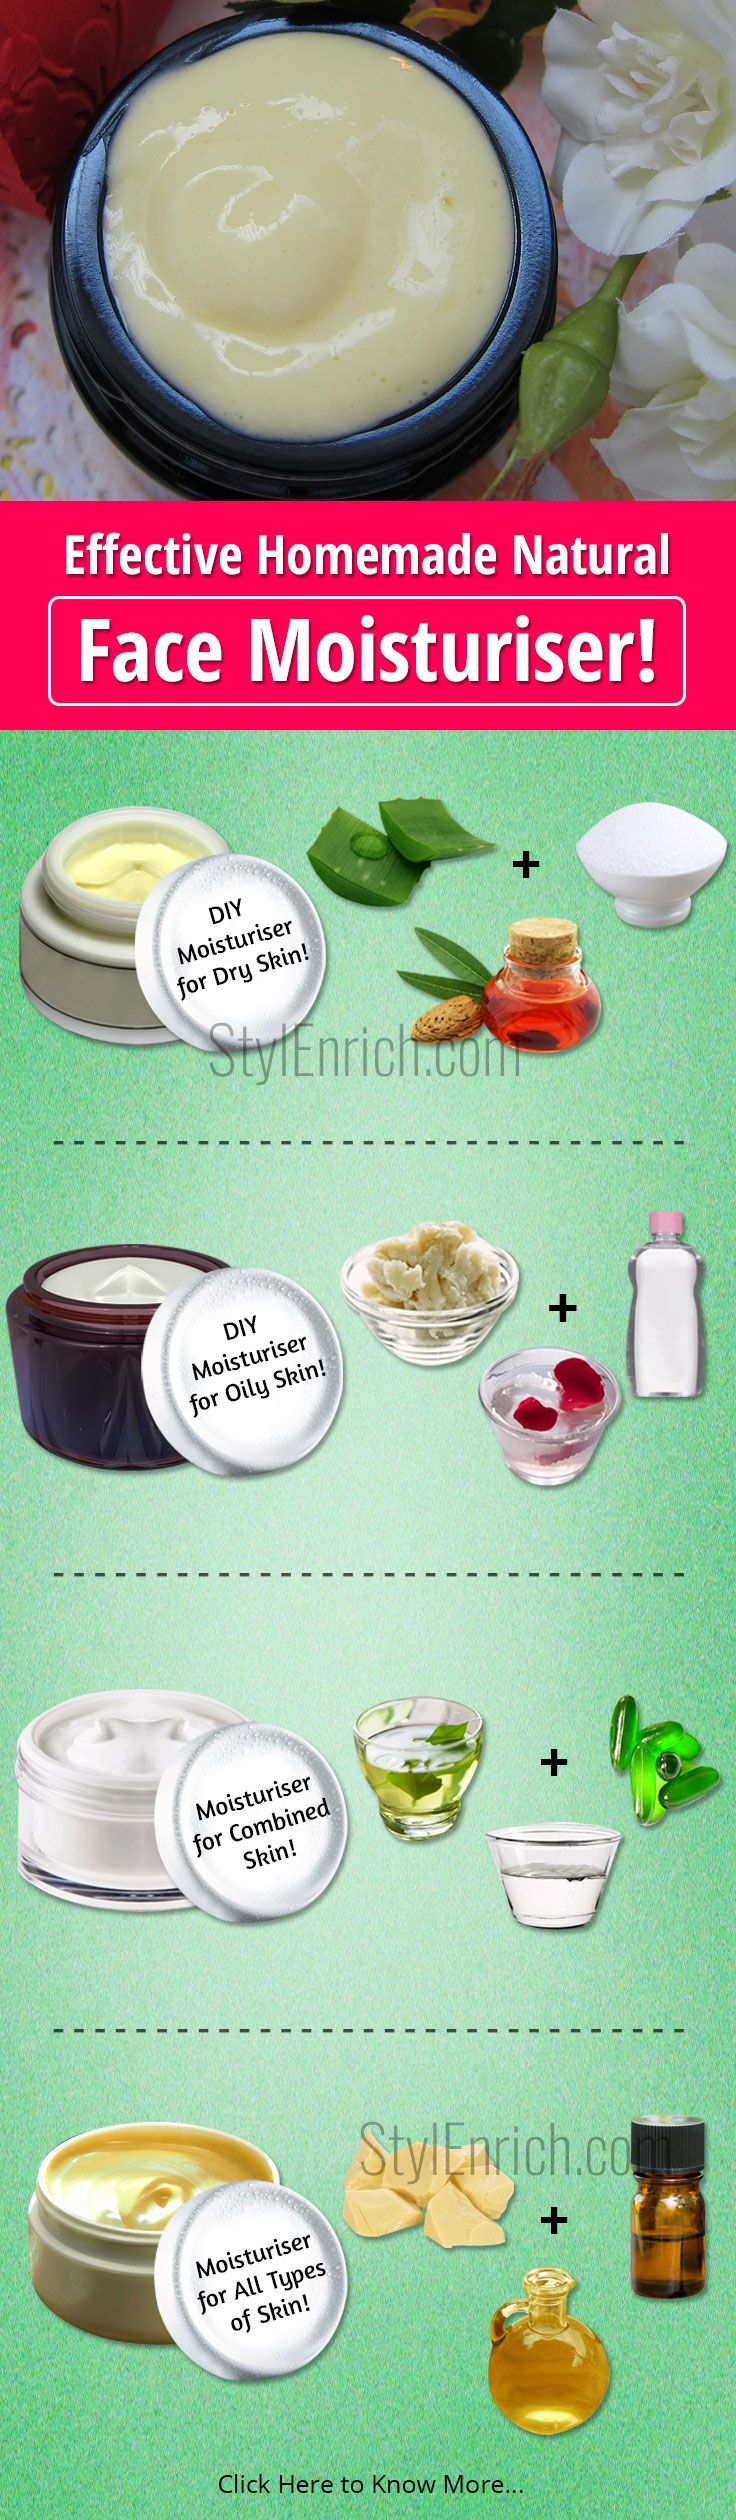 Do you know why do we need #Homemade #FaceMoisturiser, what is special in it for your skin? Moisturisers are the important part of your #SkinCare routine. So you can enjoy homemade facial moisturiser #Recipes which are simple, affordable and downright cheap and you will find almost all the ingredients in your kitchen.